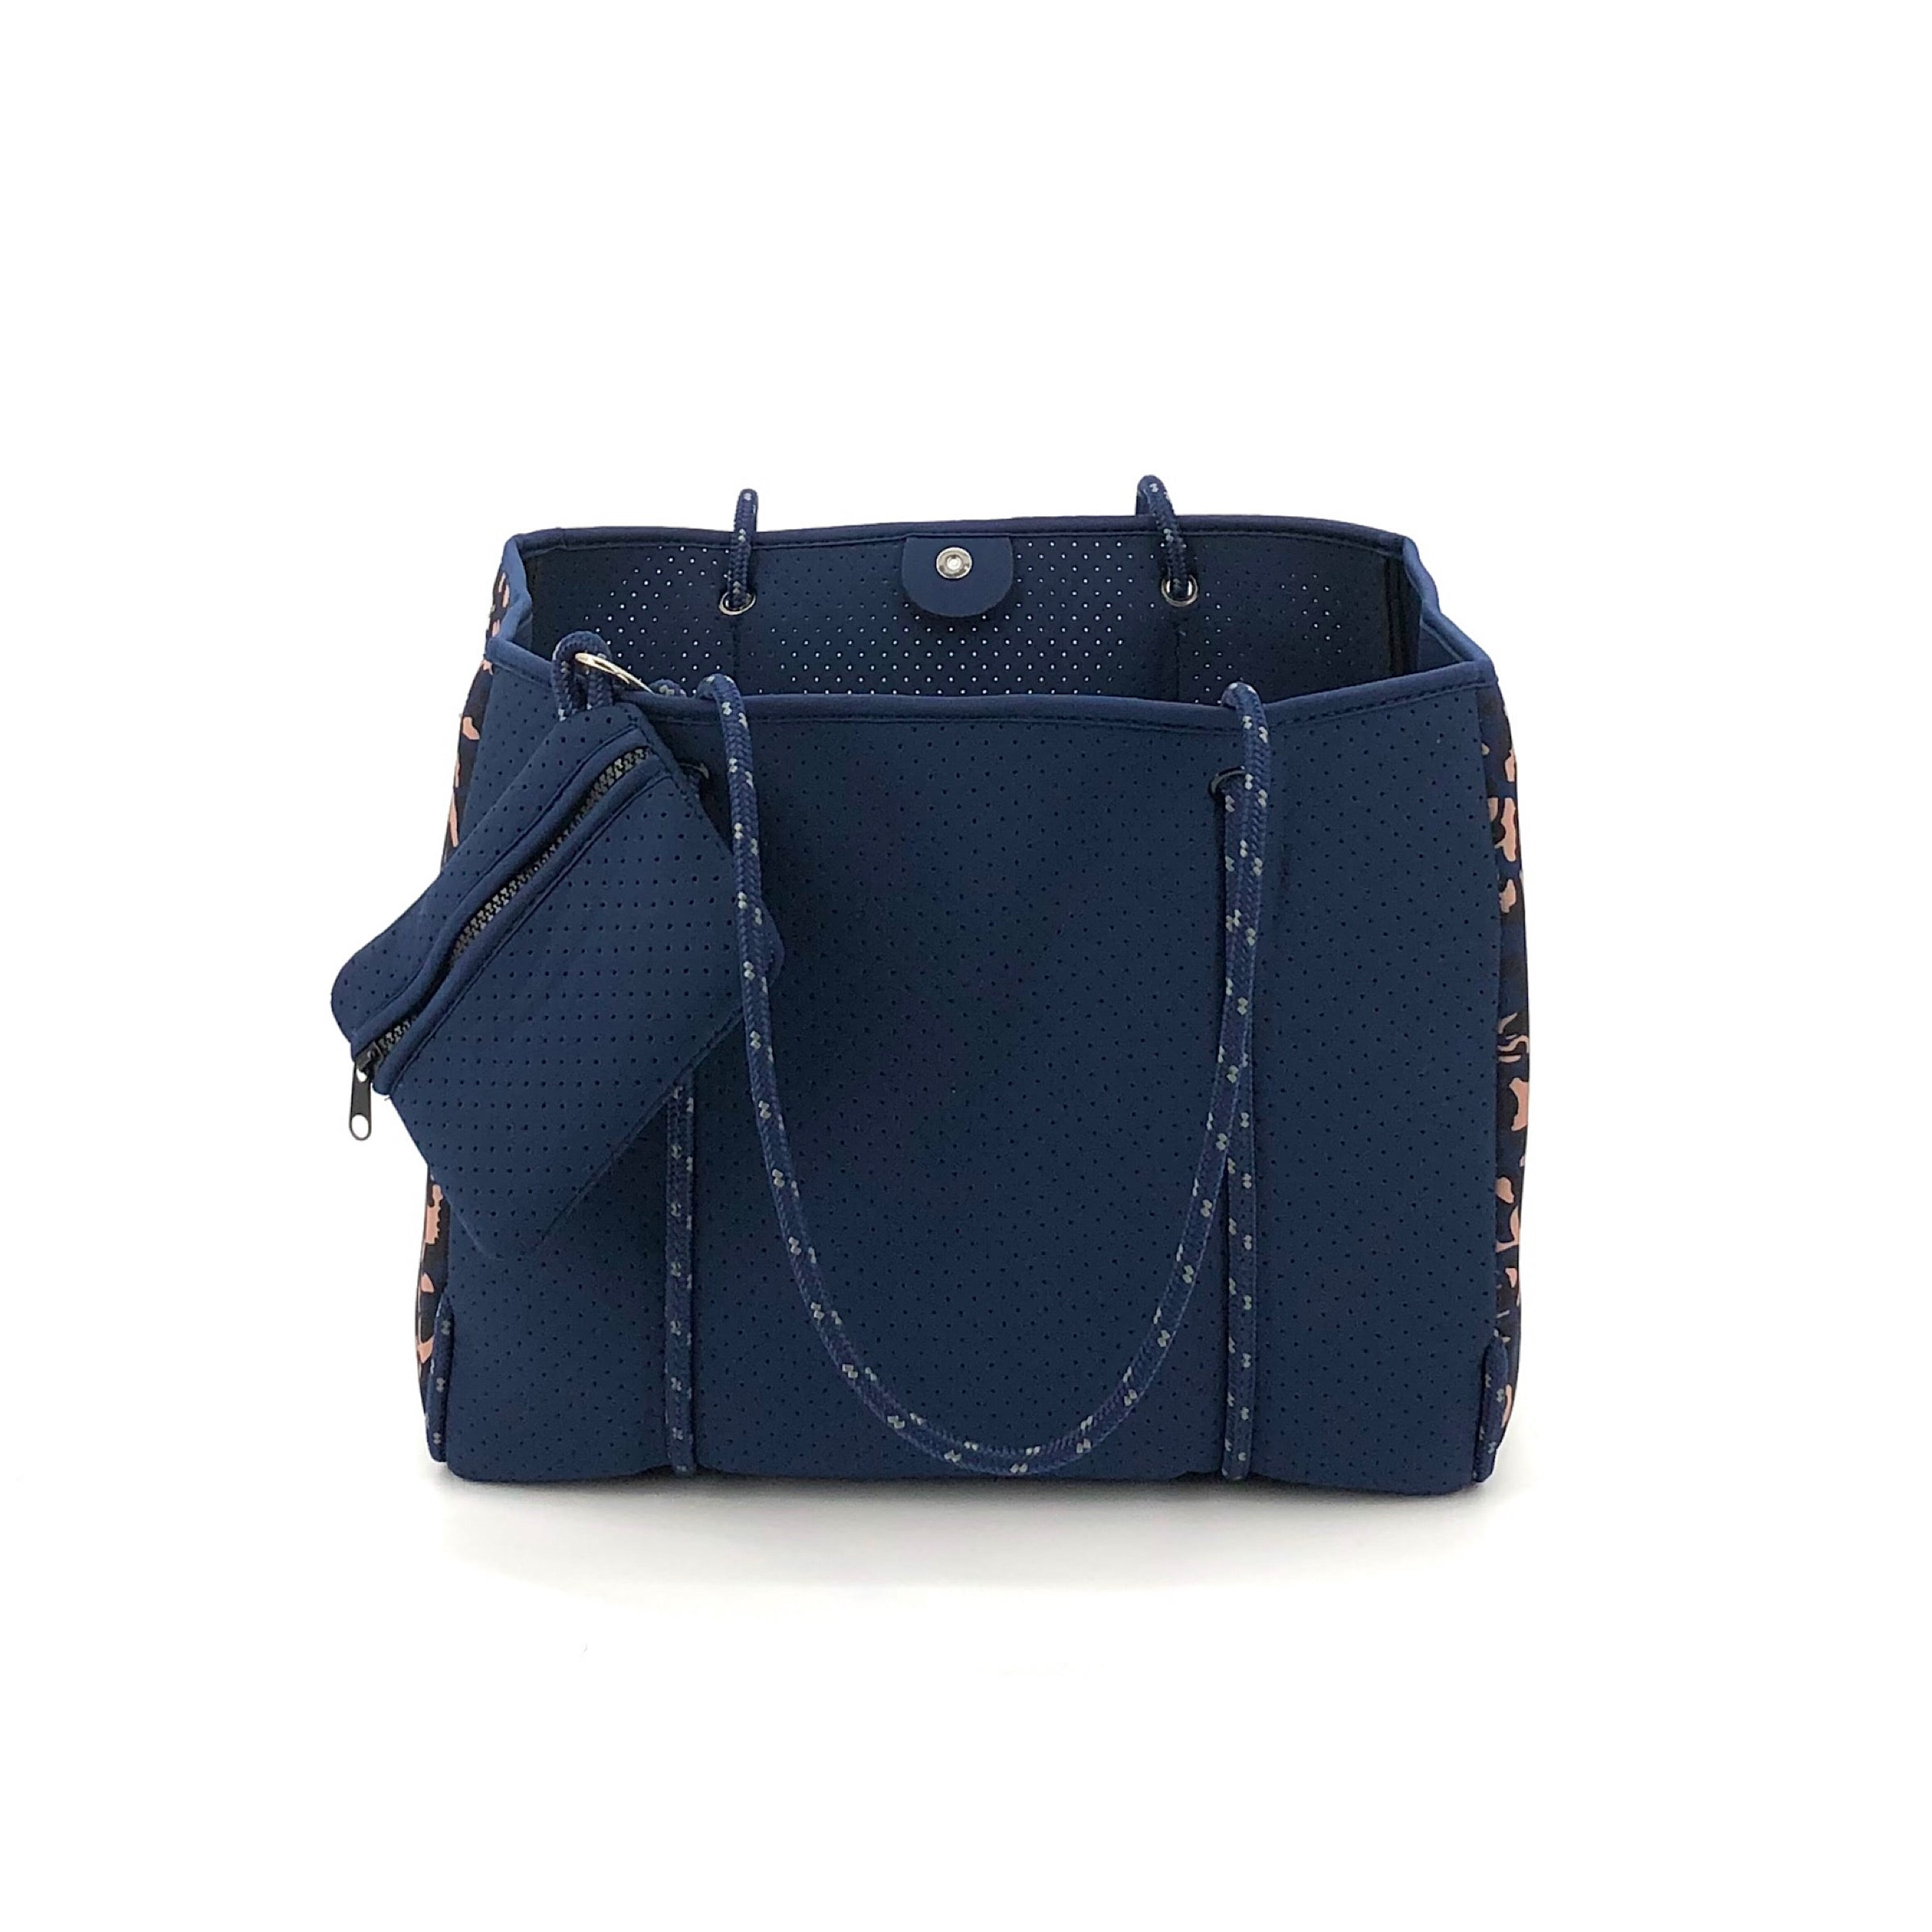 The Neoprene Tote in Navy and Leopard